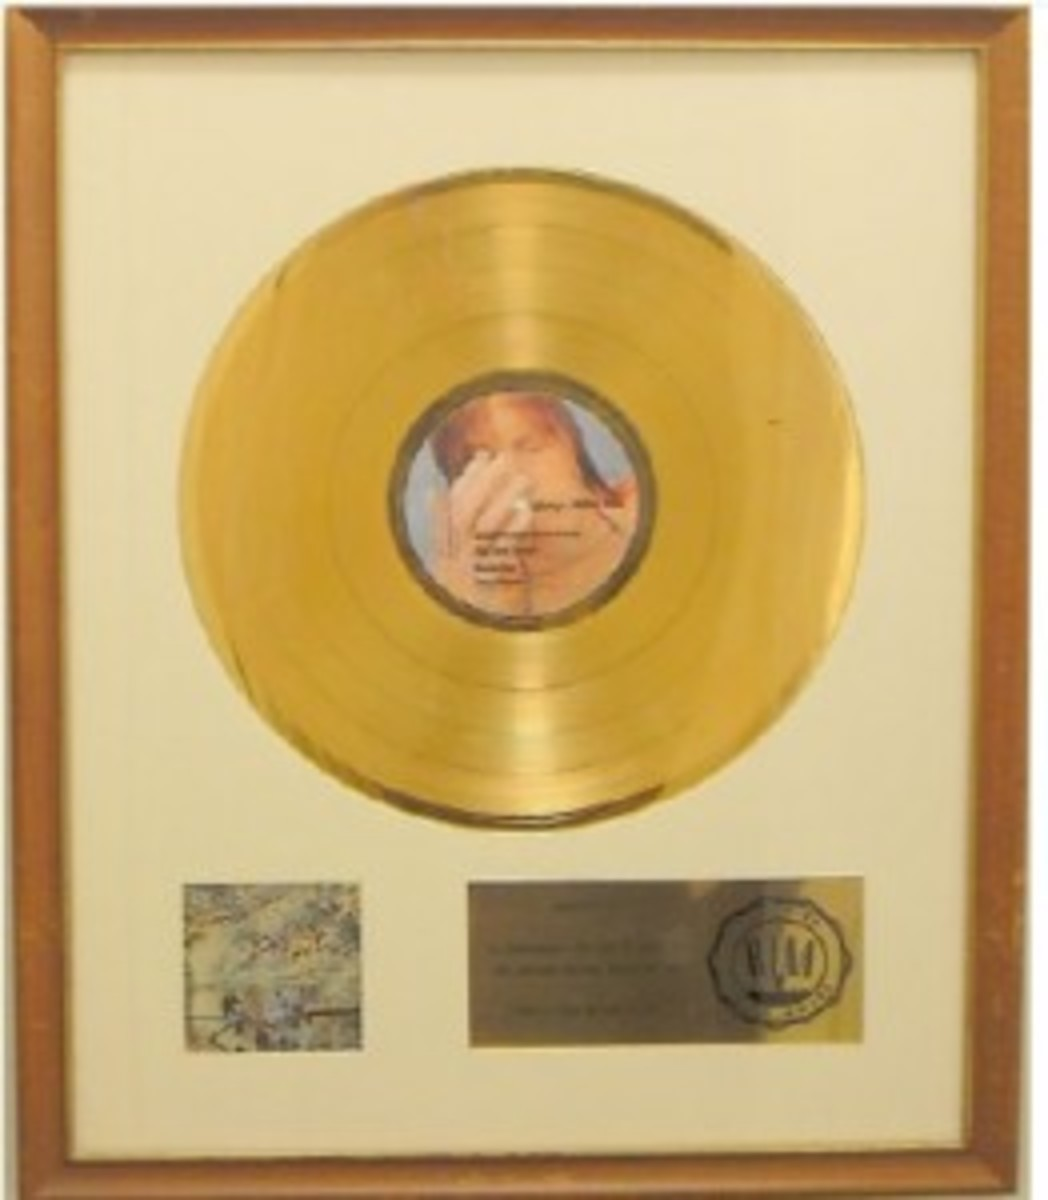 Wings Gold Record